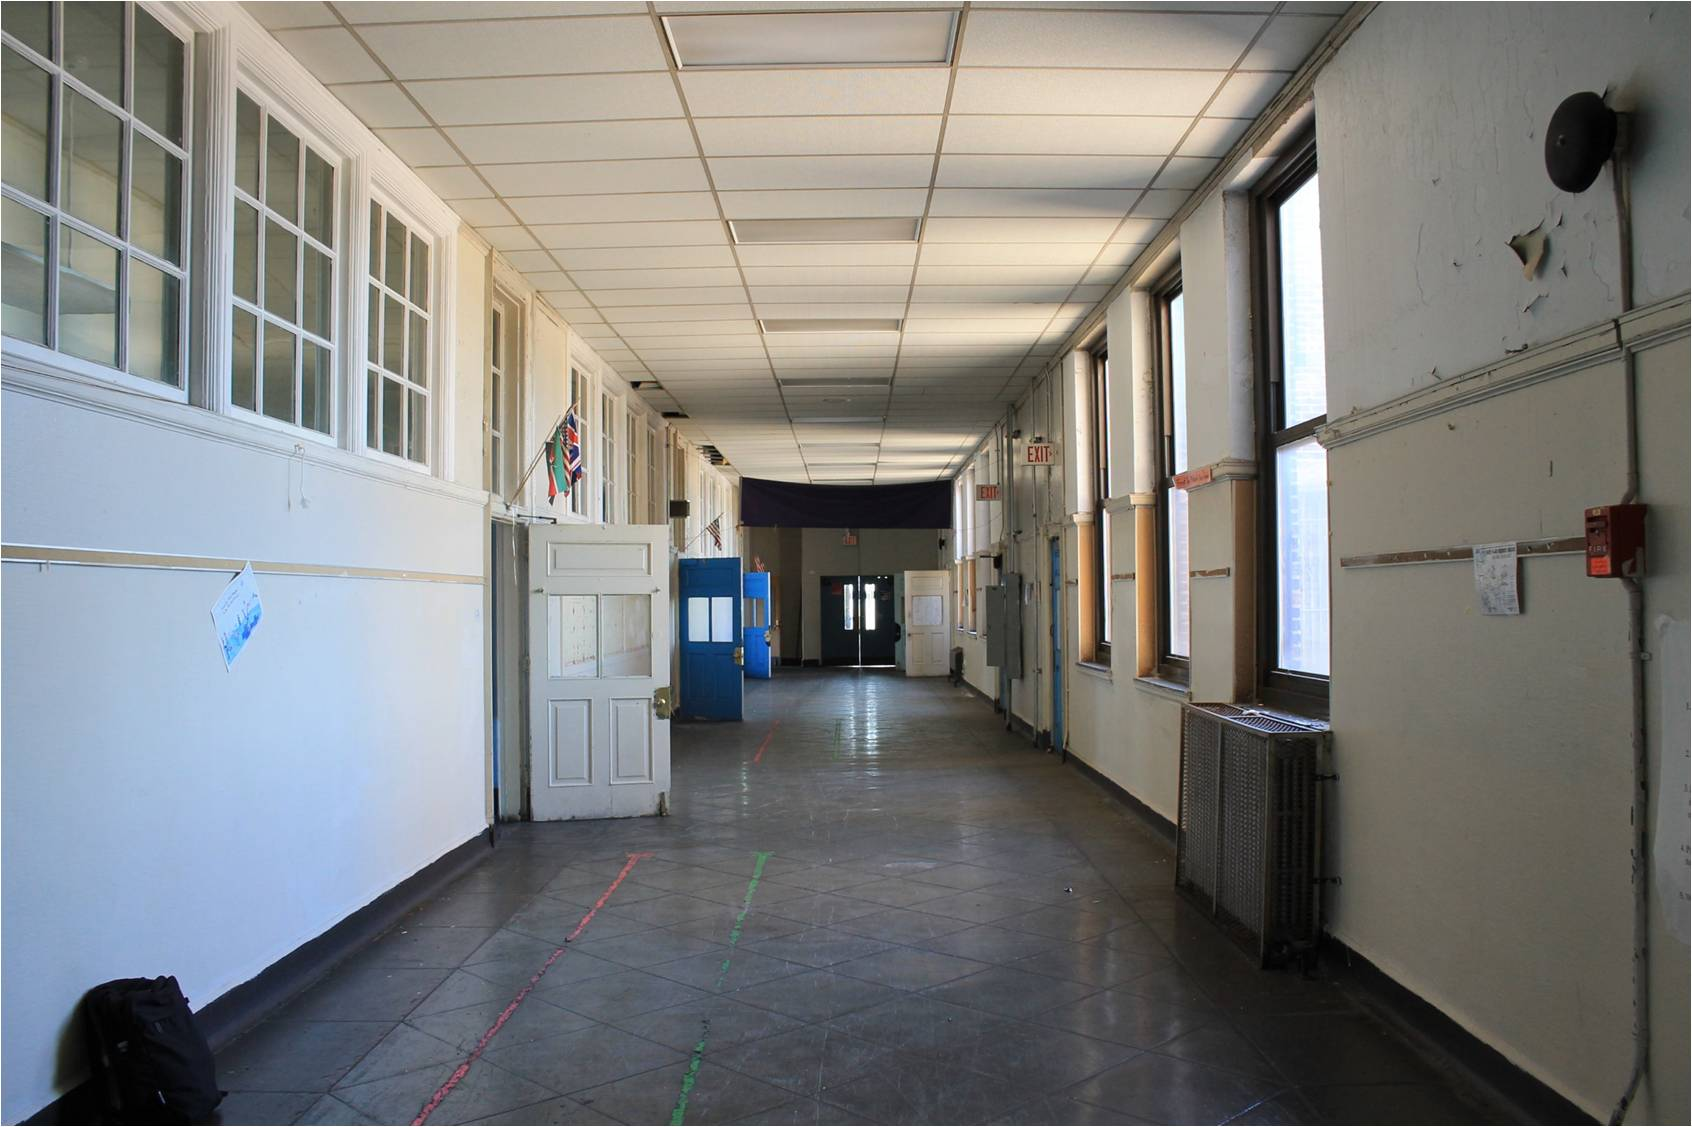 Old Willard's 14-foot wide hallways offer opportunities for stoop space in a residential reuse | courtesy of Community Design Collaborative